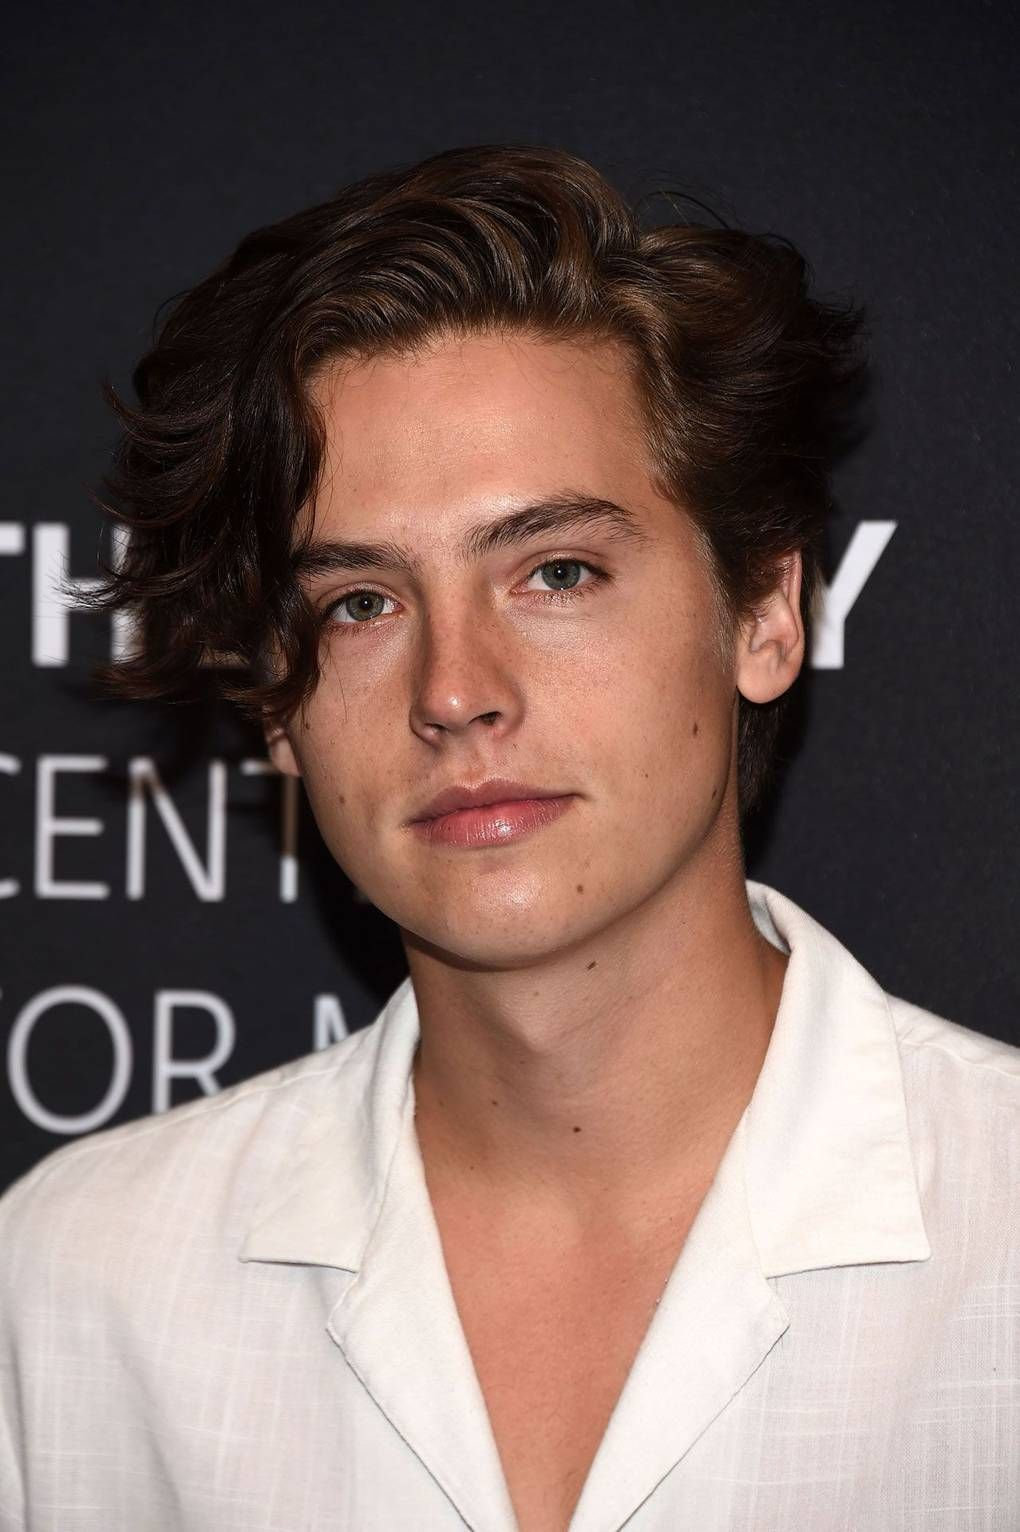 11 Reasons We Love Cole Sprouse #coleanddylansprouse